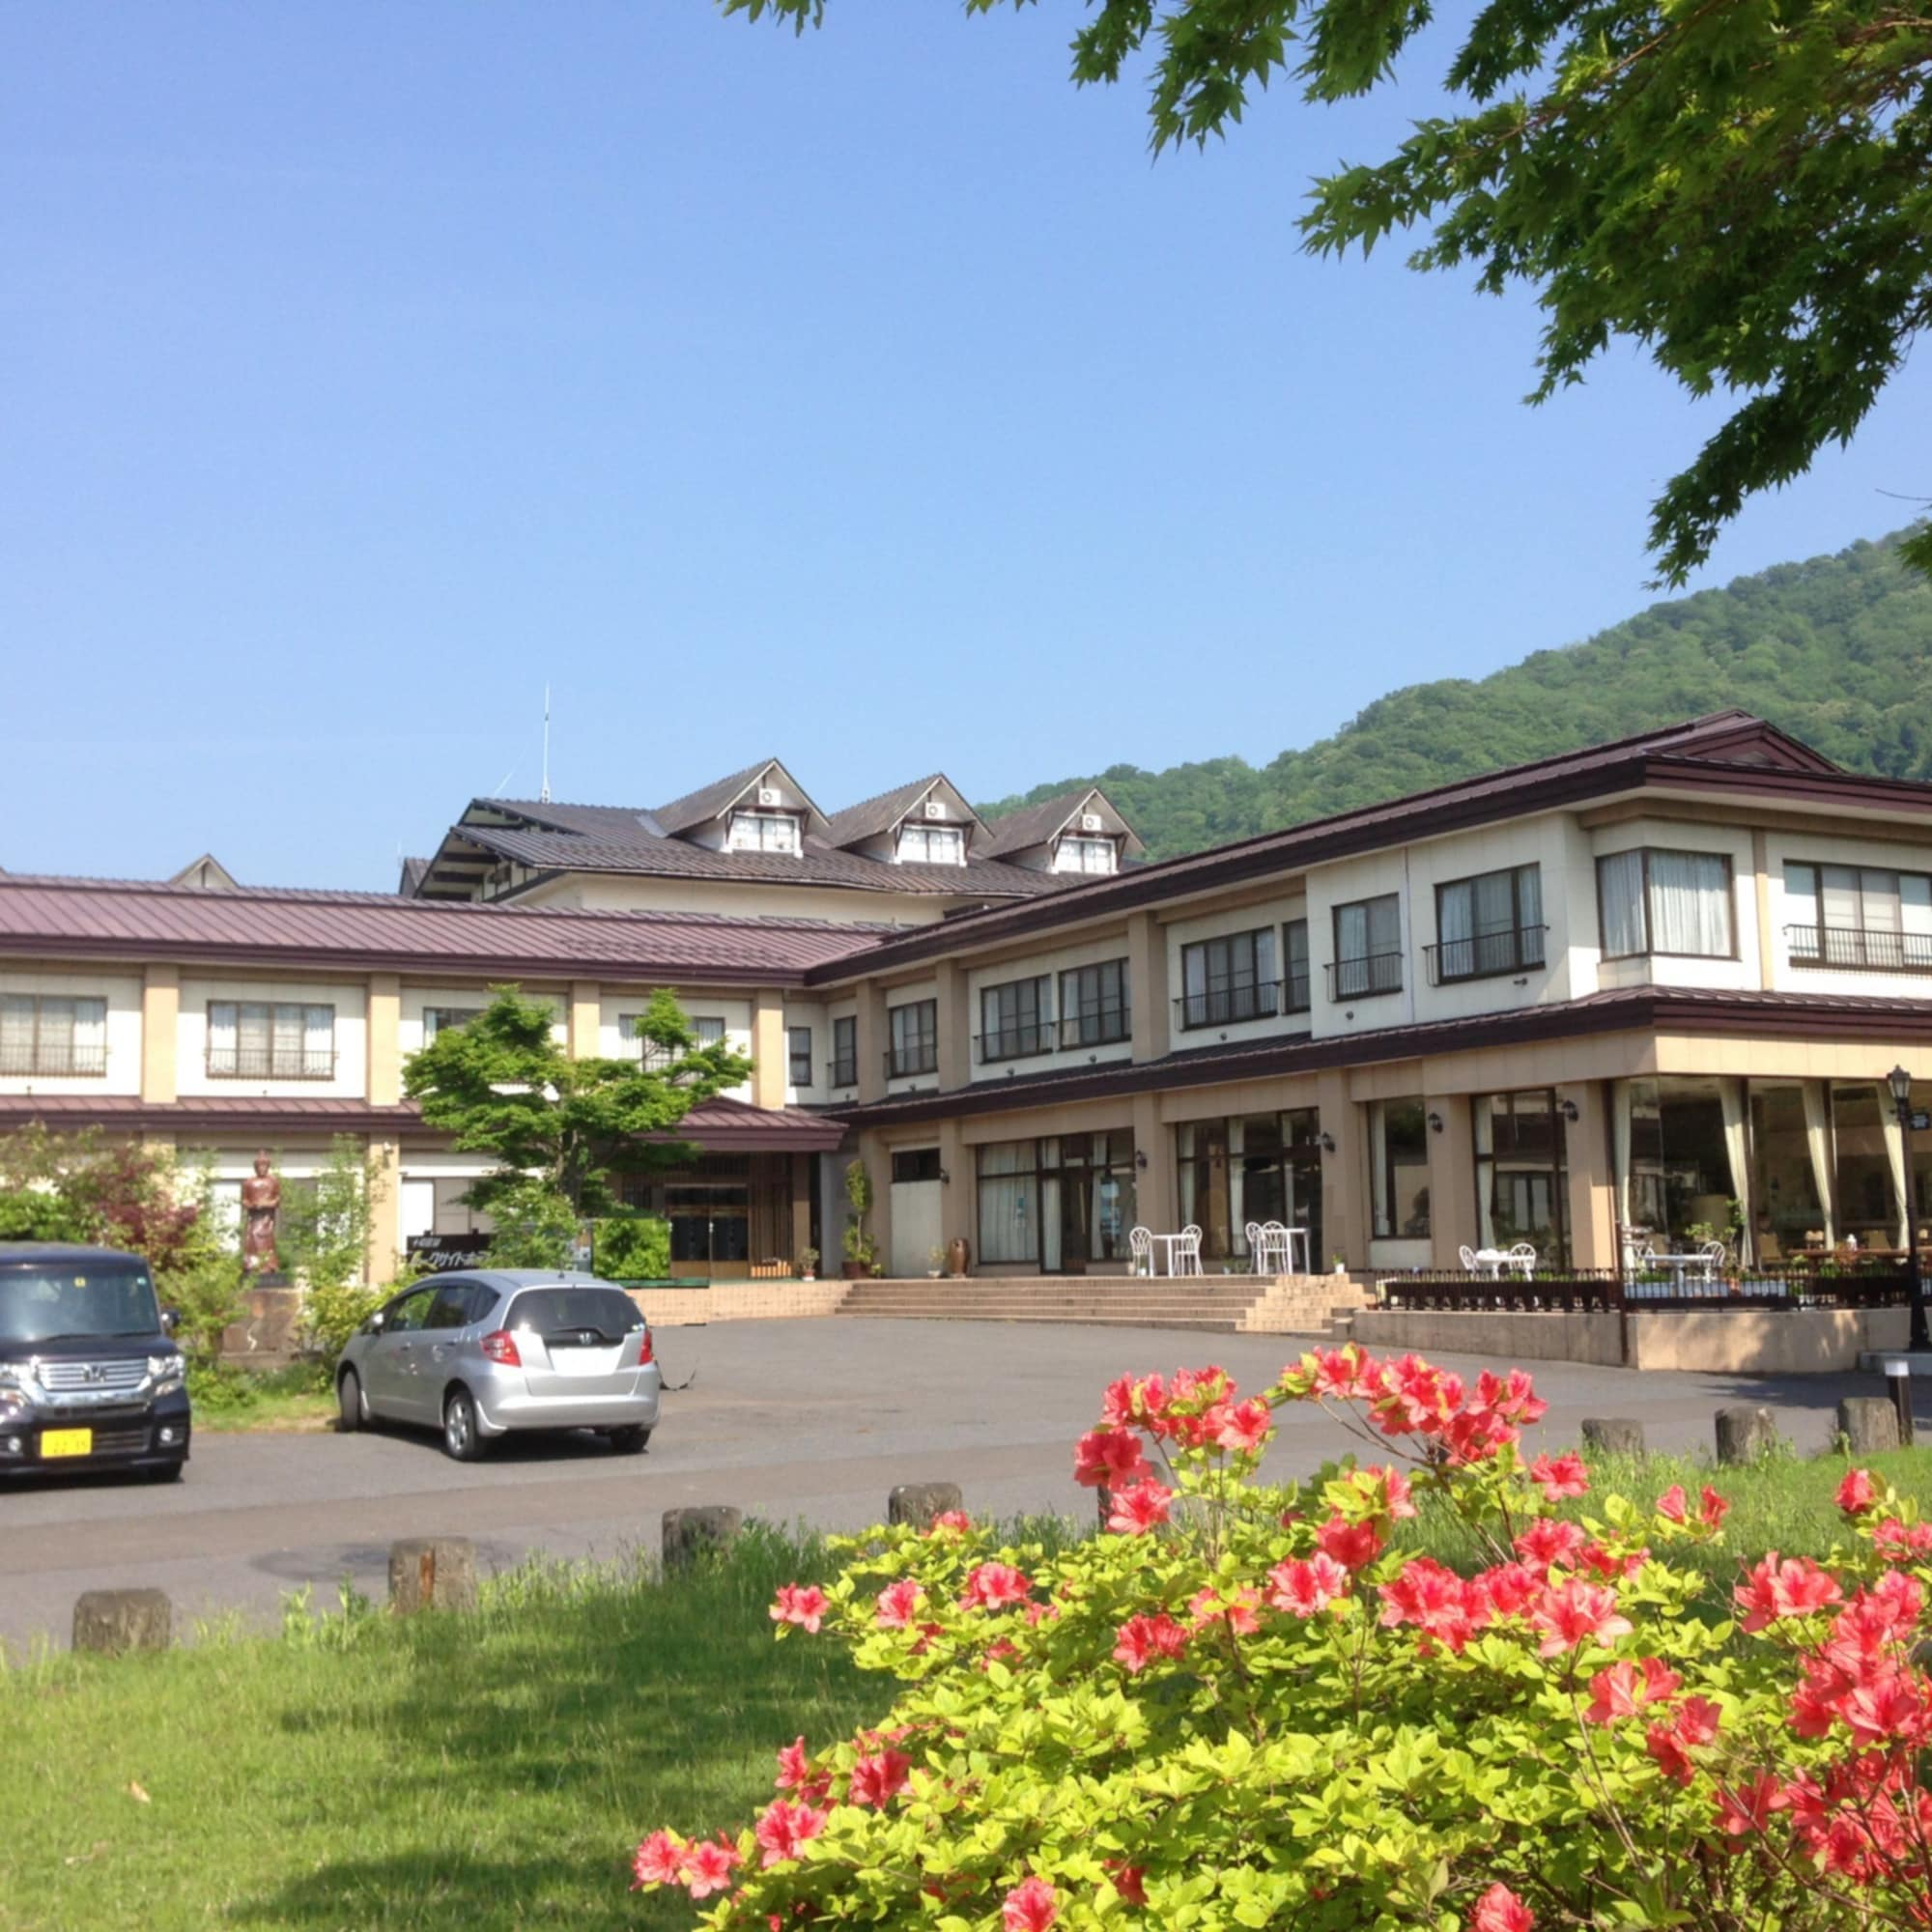 Towadako Lakeside Hotel, Towada